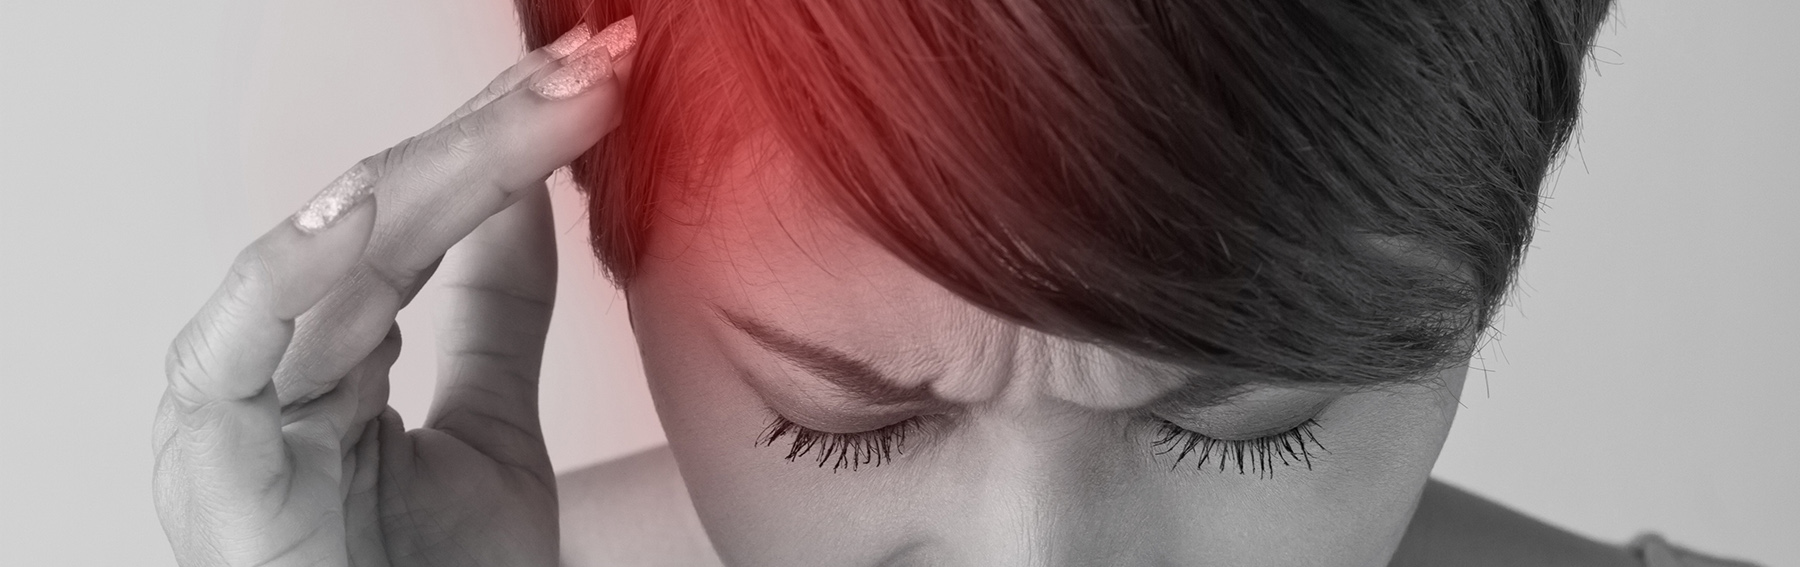 Facts about migraines